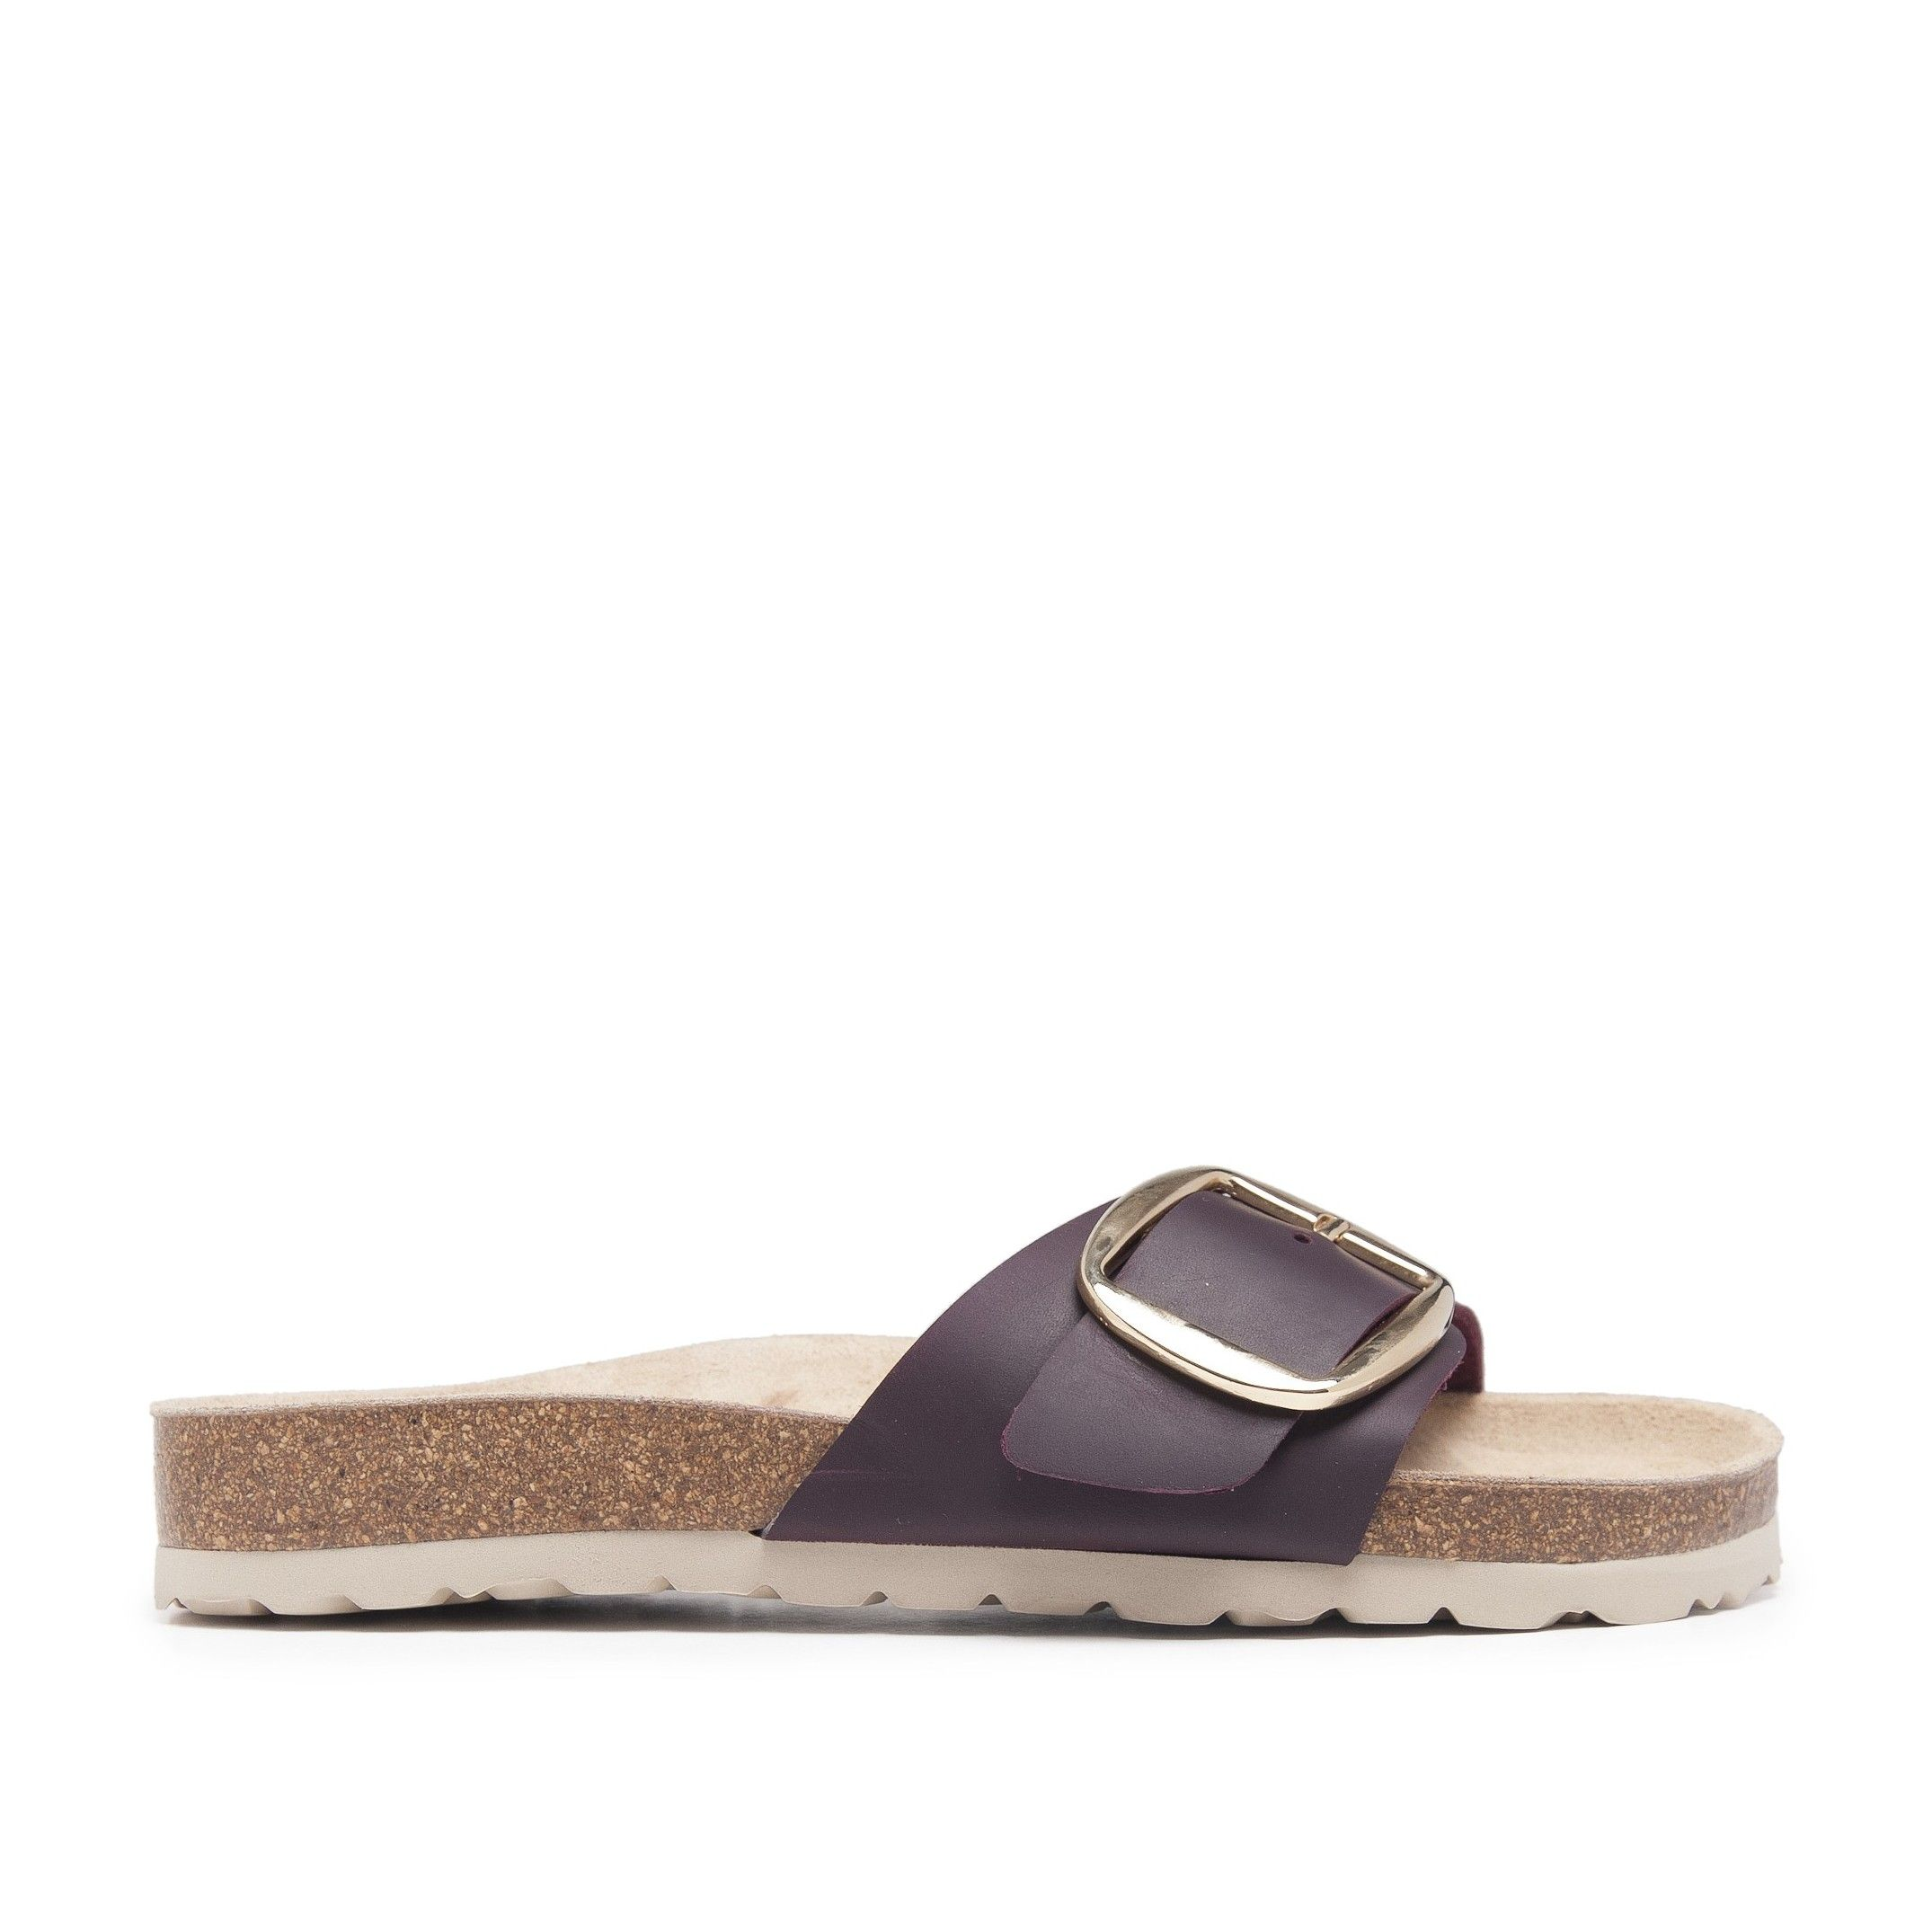 Bio Sandals Women's Sandals Bordeaux Maria Barcelo